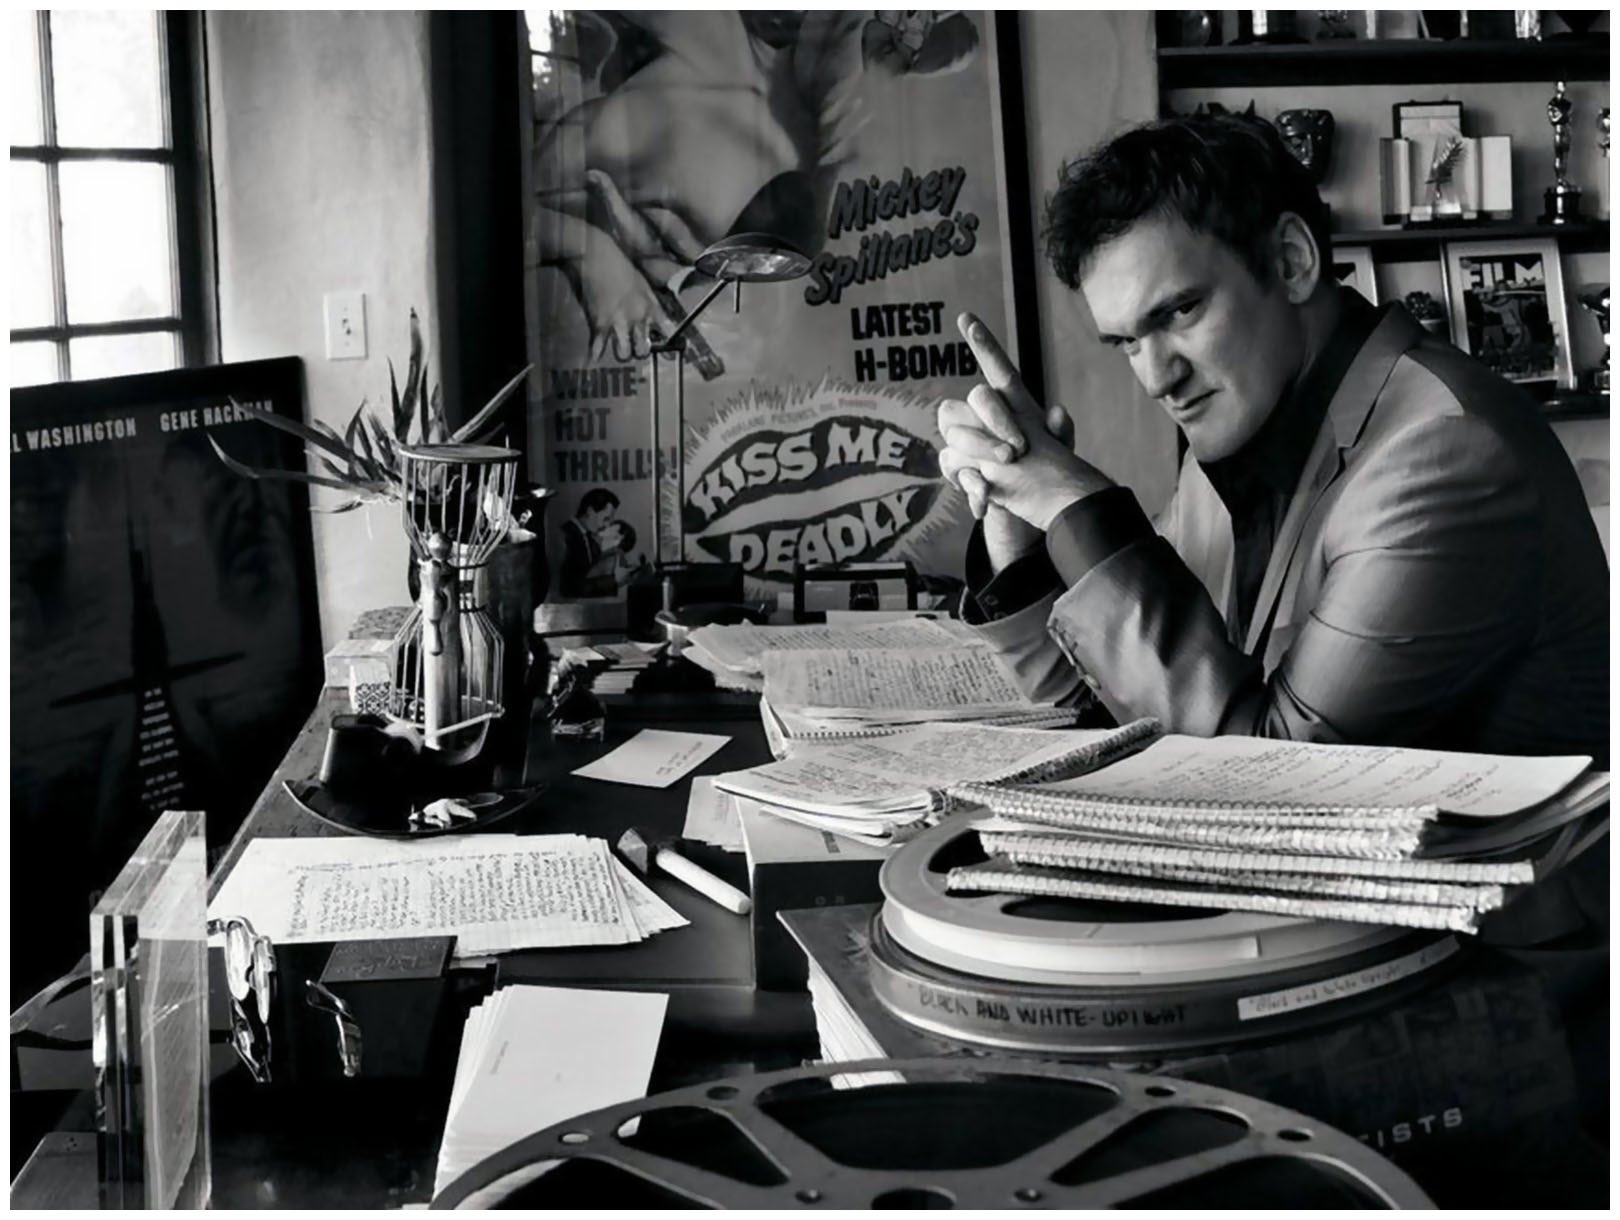 Quentin Tarantino (Knoxville, Tennessee, March 27, 1963)  Happy birthday !!!